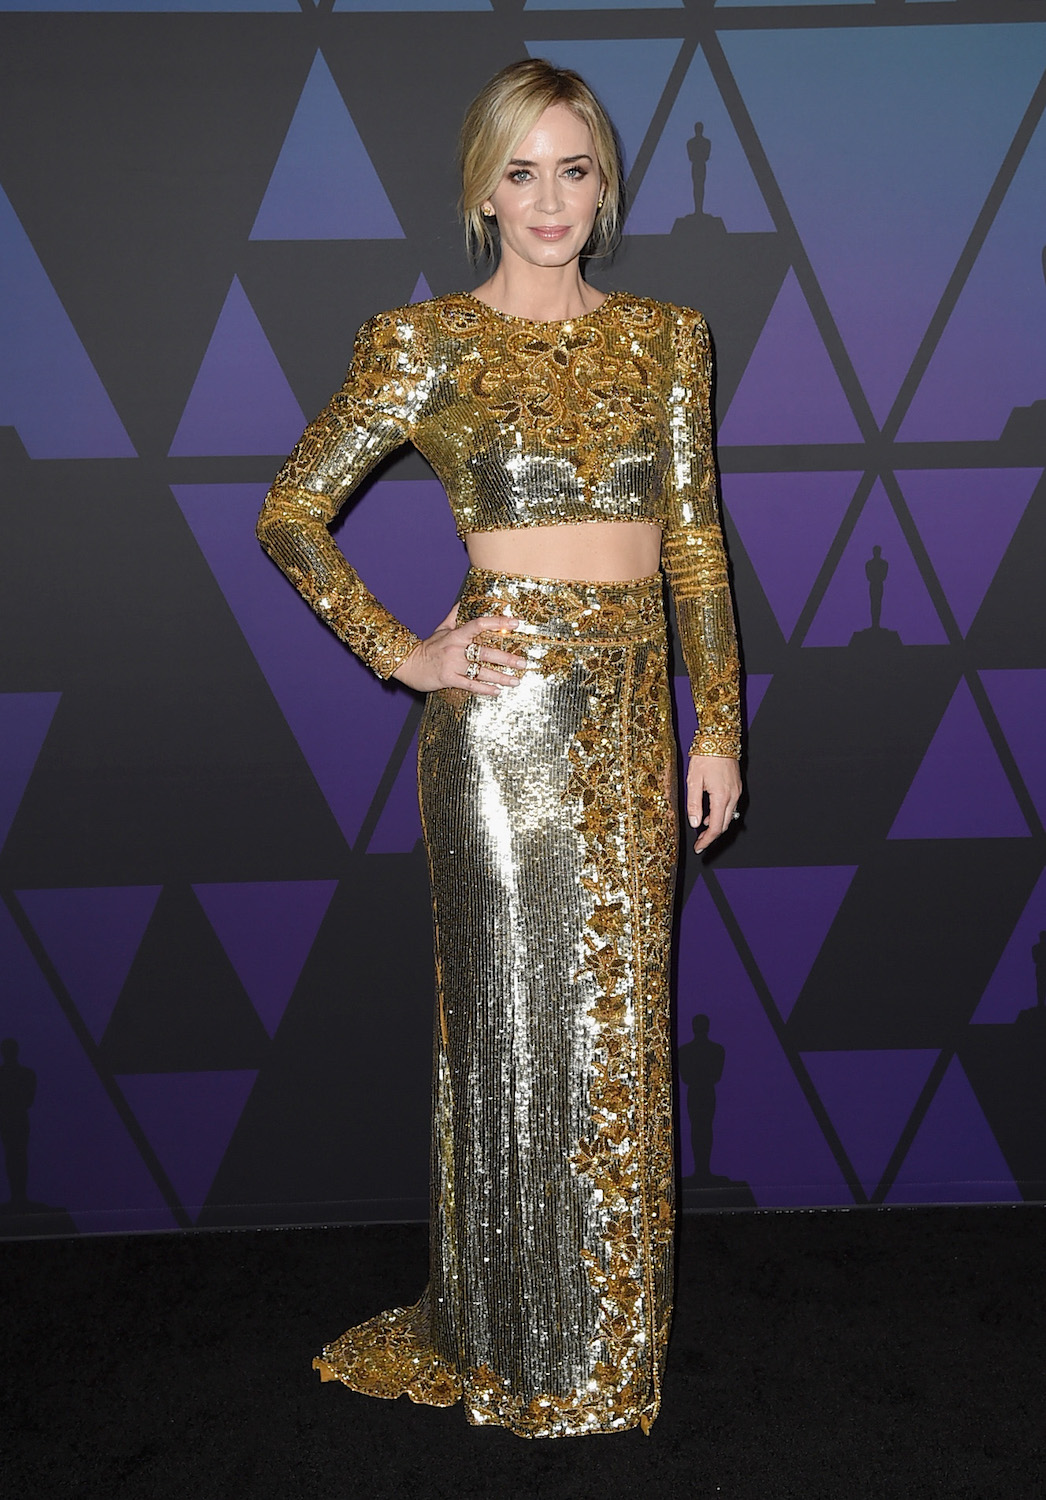 Emily Blunt attends the Academy of Motion Picture Arts and Sciences